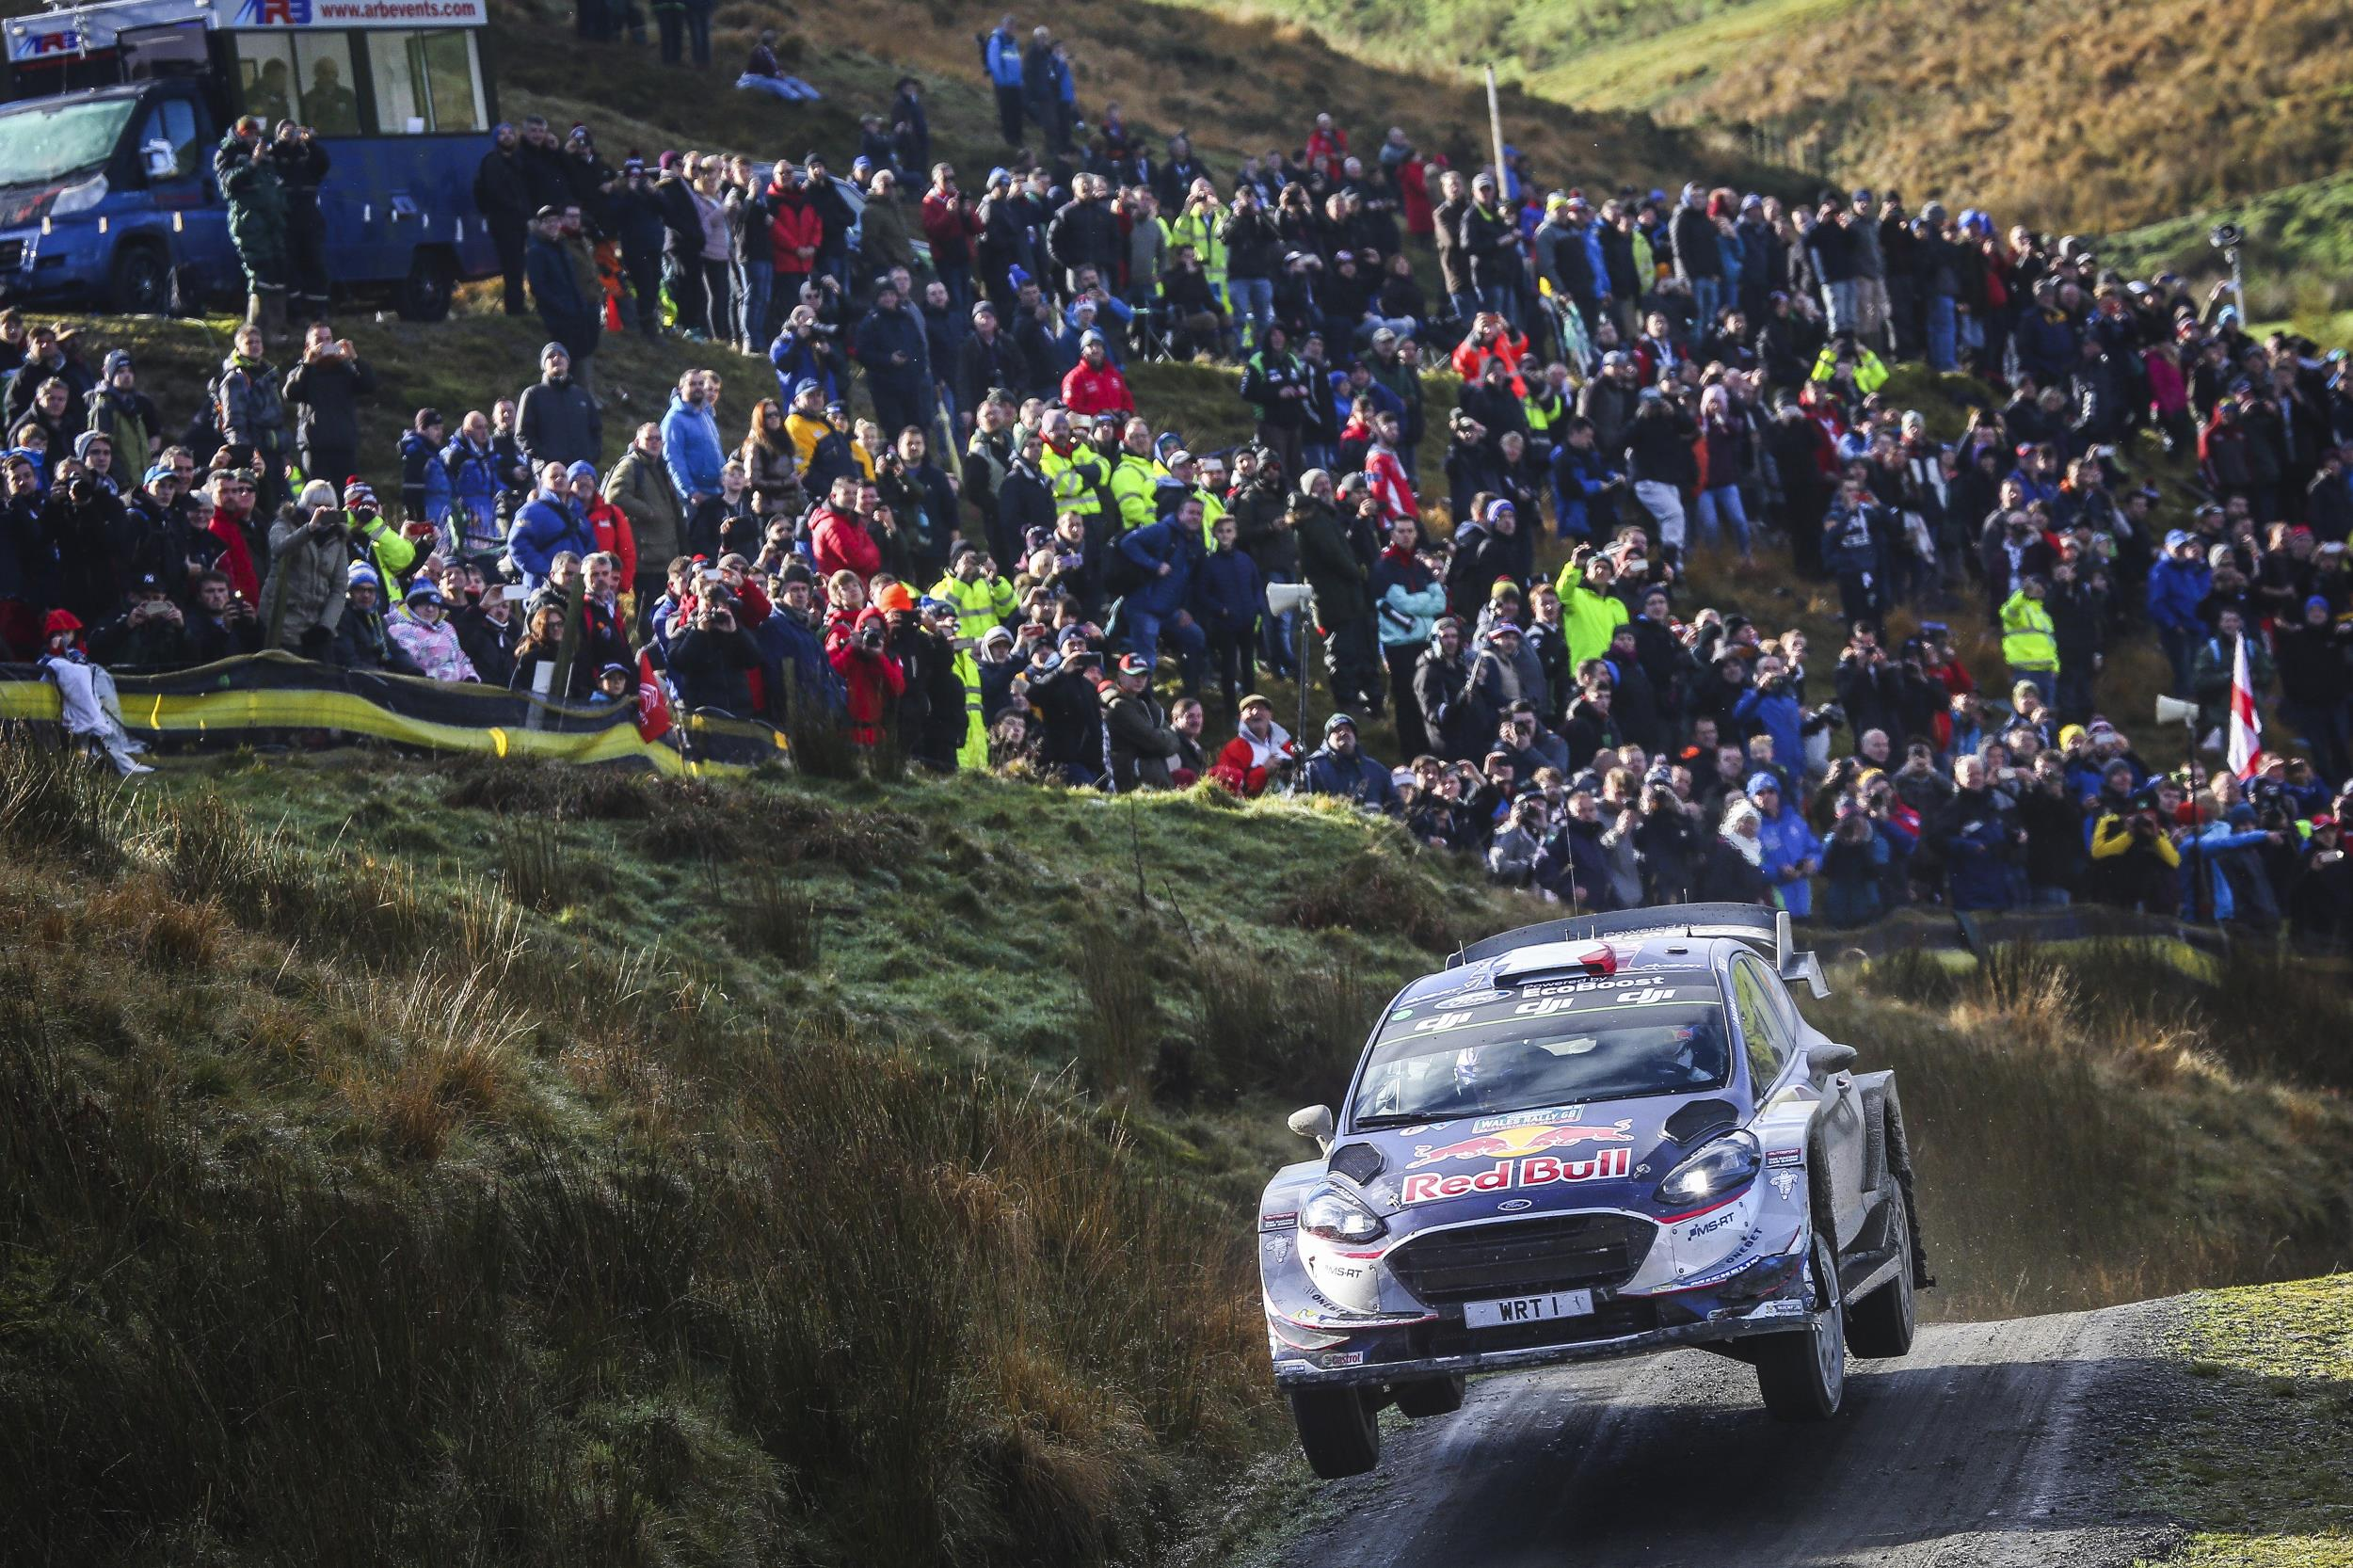 Wales Rally GB preview today at Autosport show – Wheels Within Wales